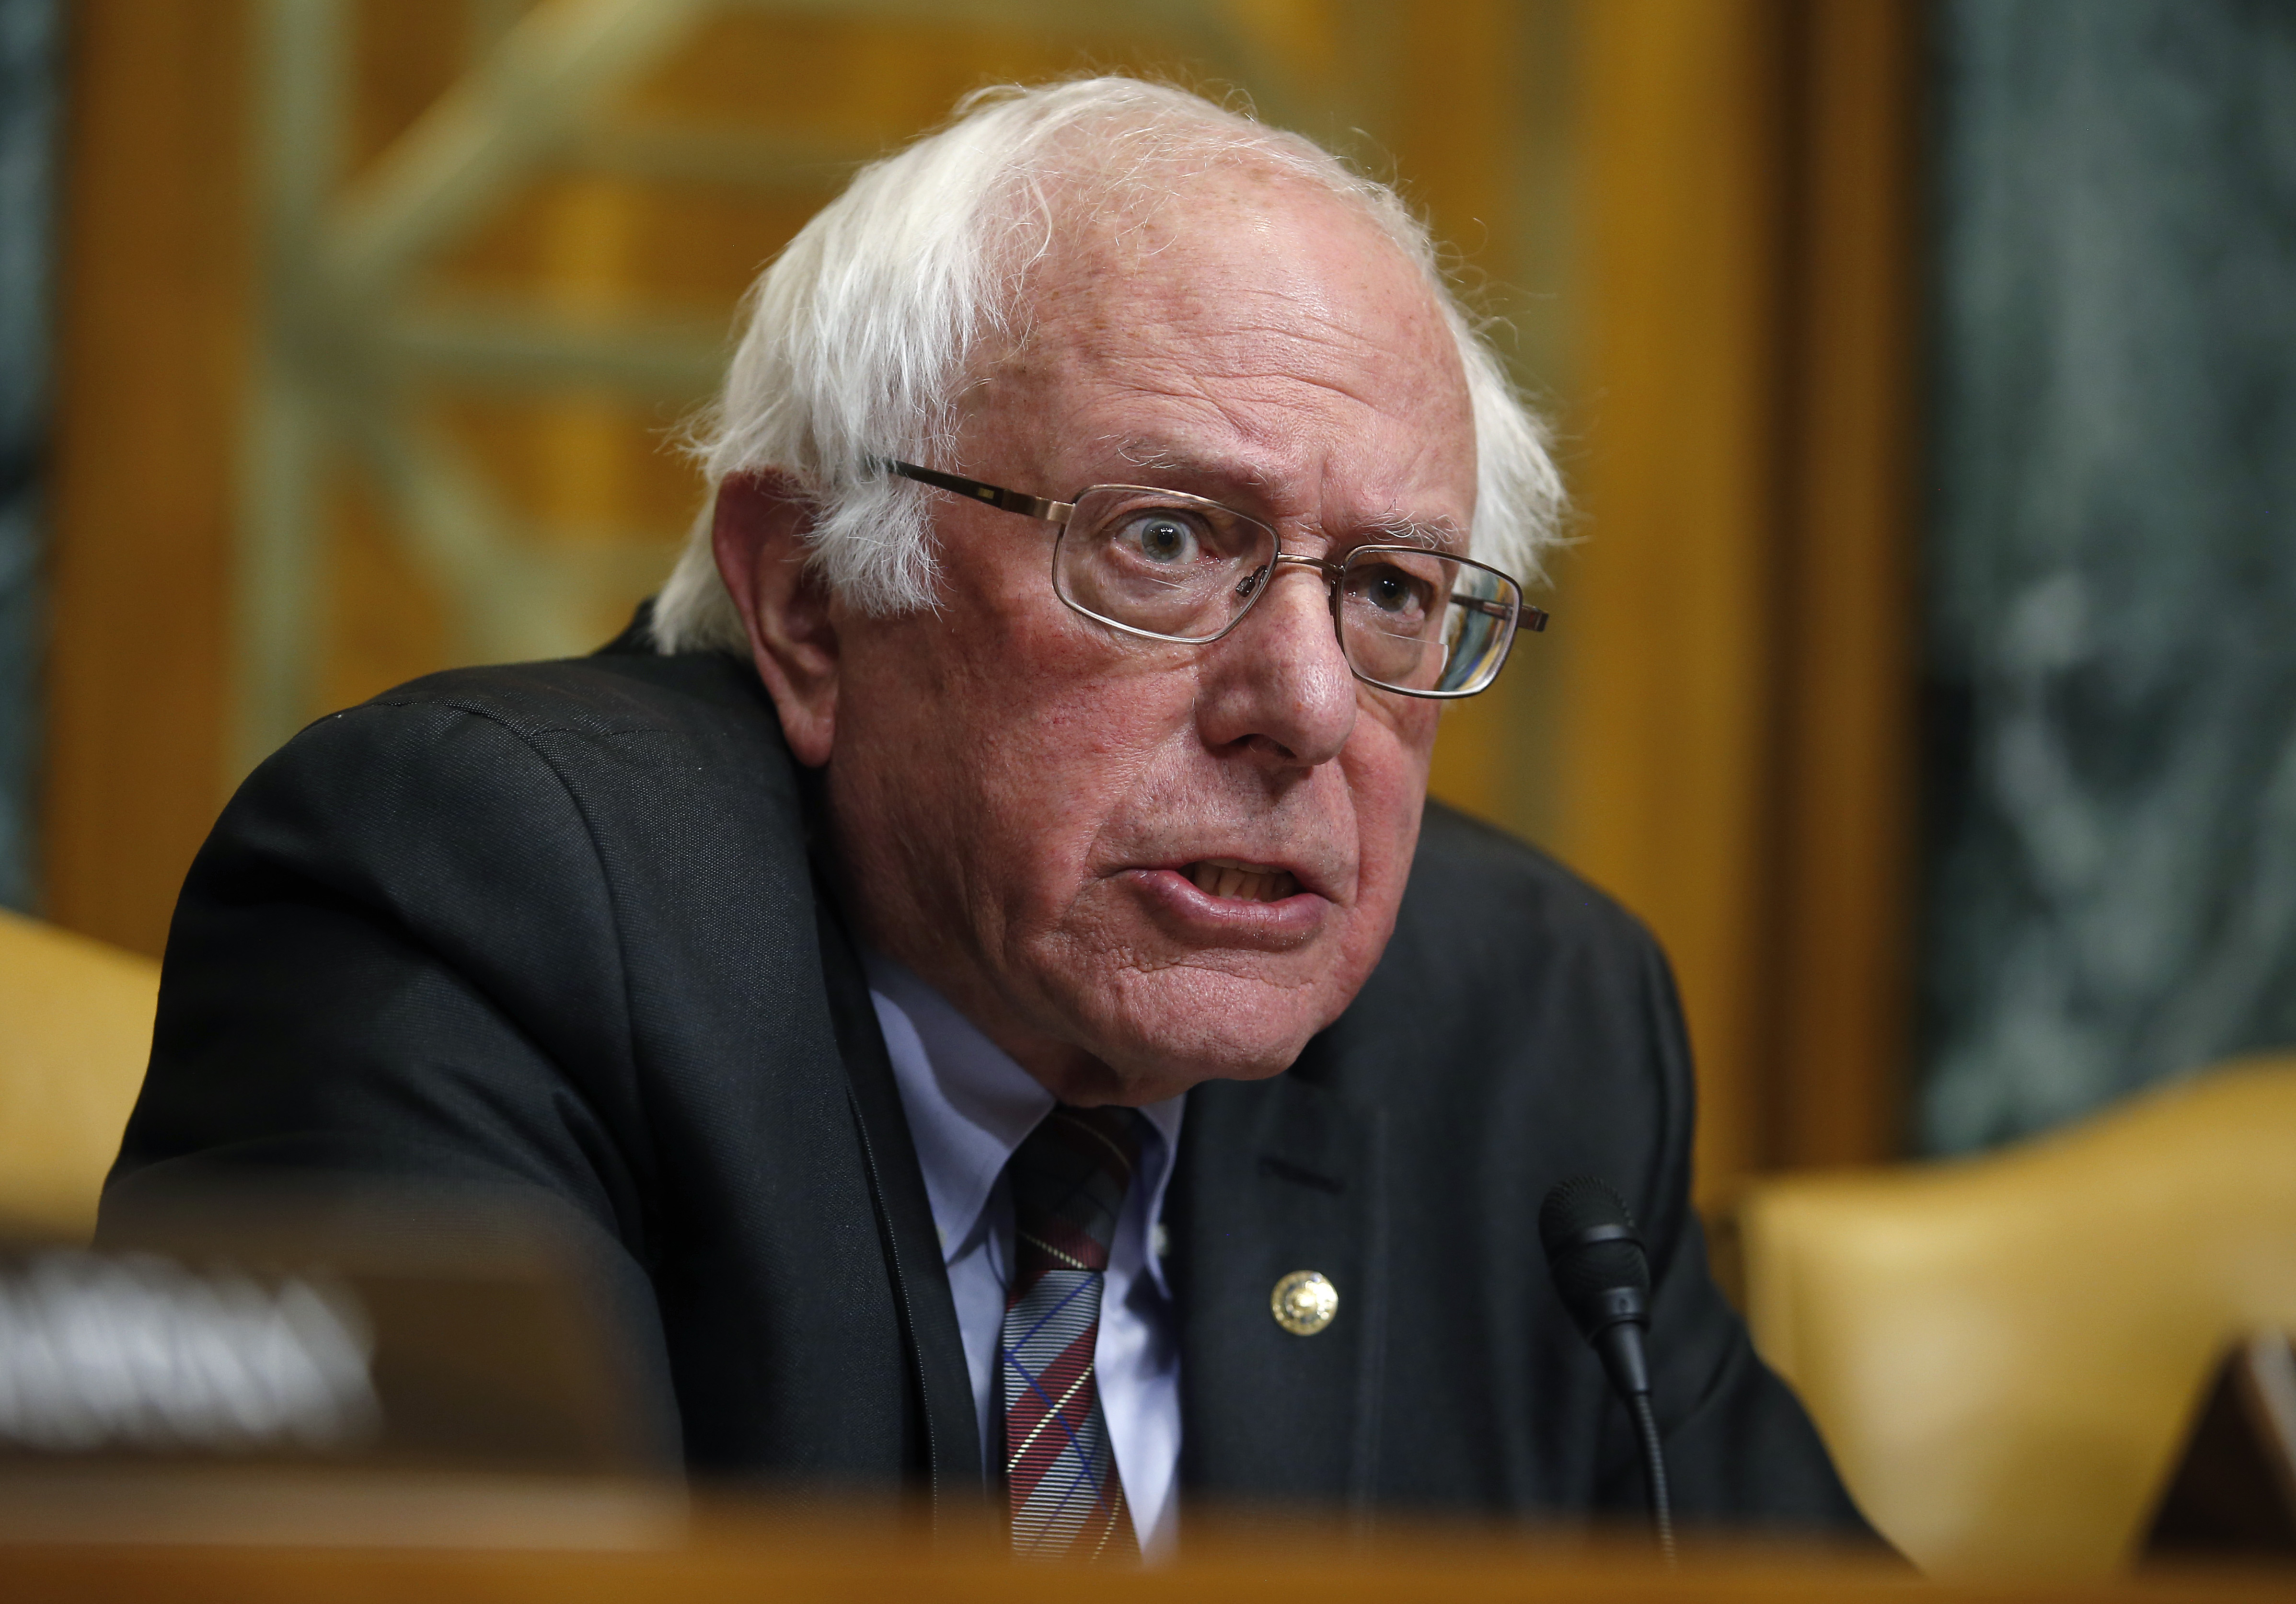 Senator Sanders speaks during Senate Budget Committee markup of FY2018 Budget reconciliation legislation on Capitol Hill in Washington